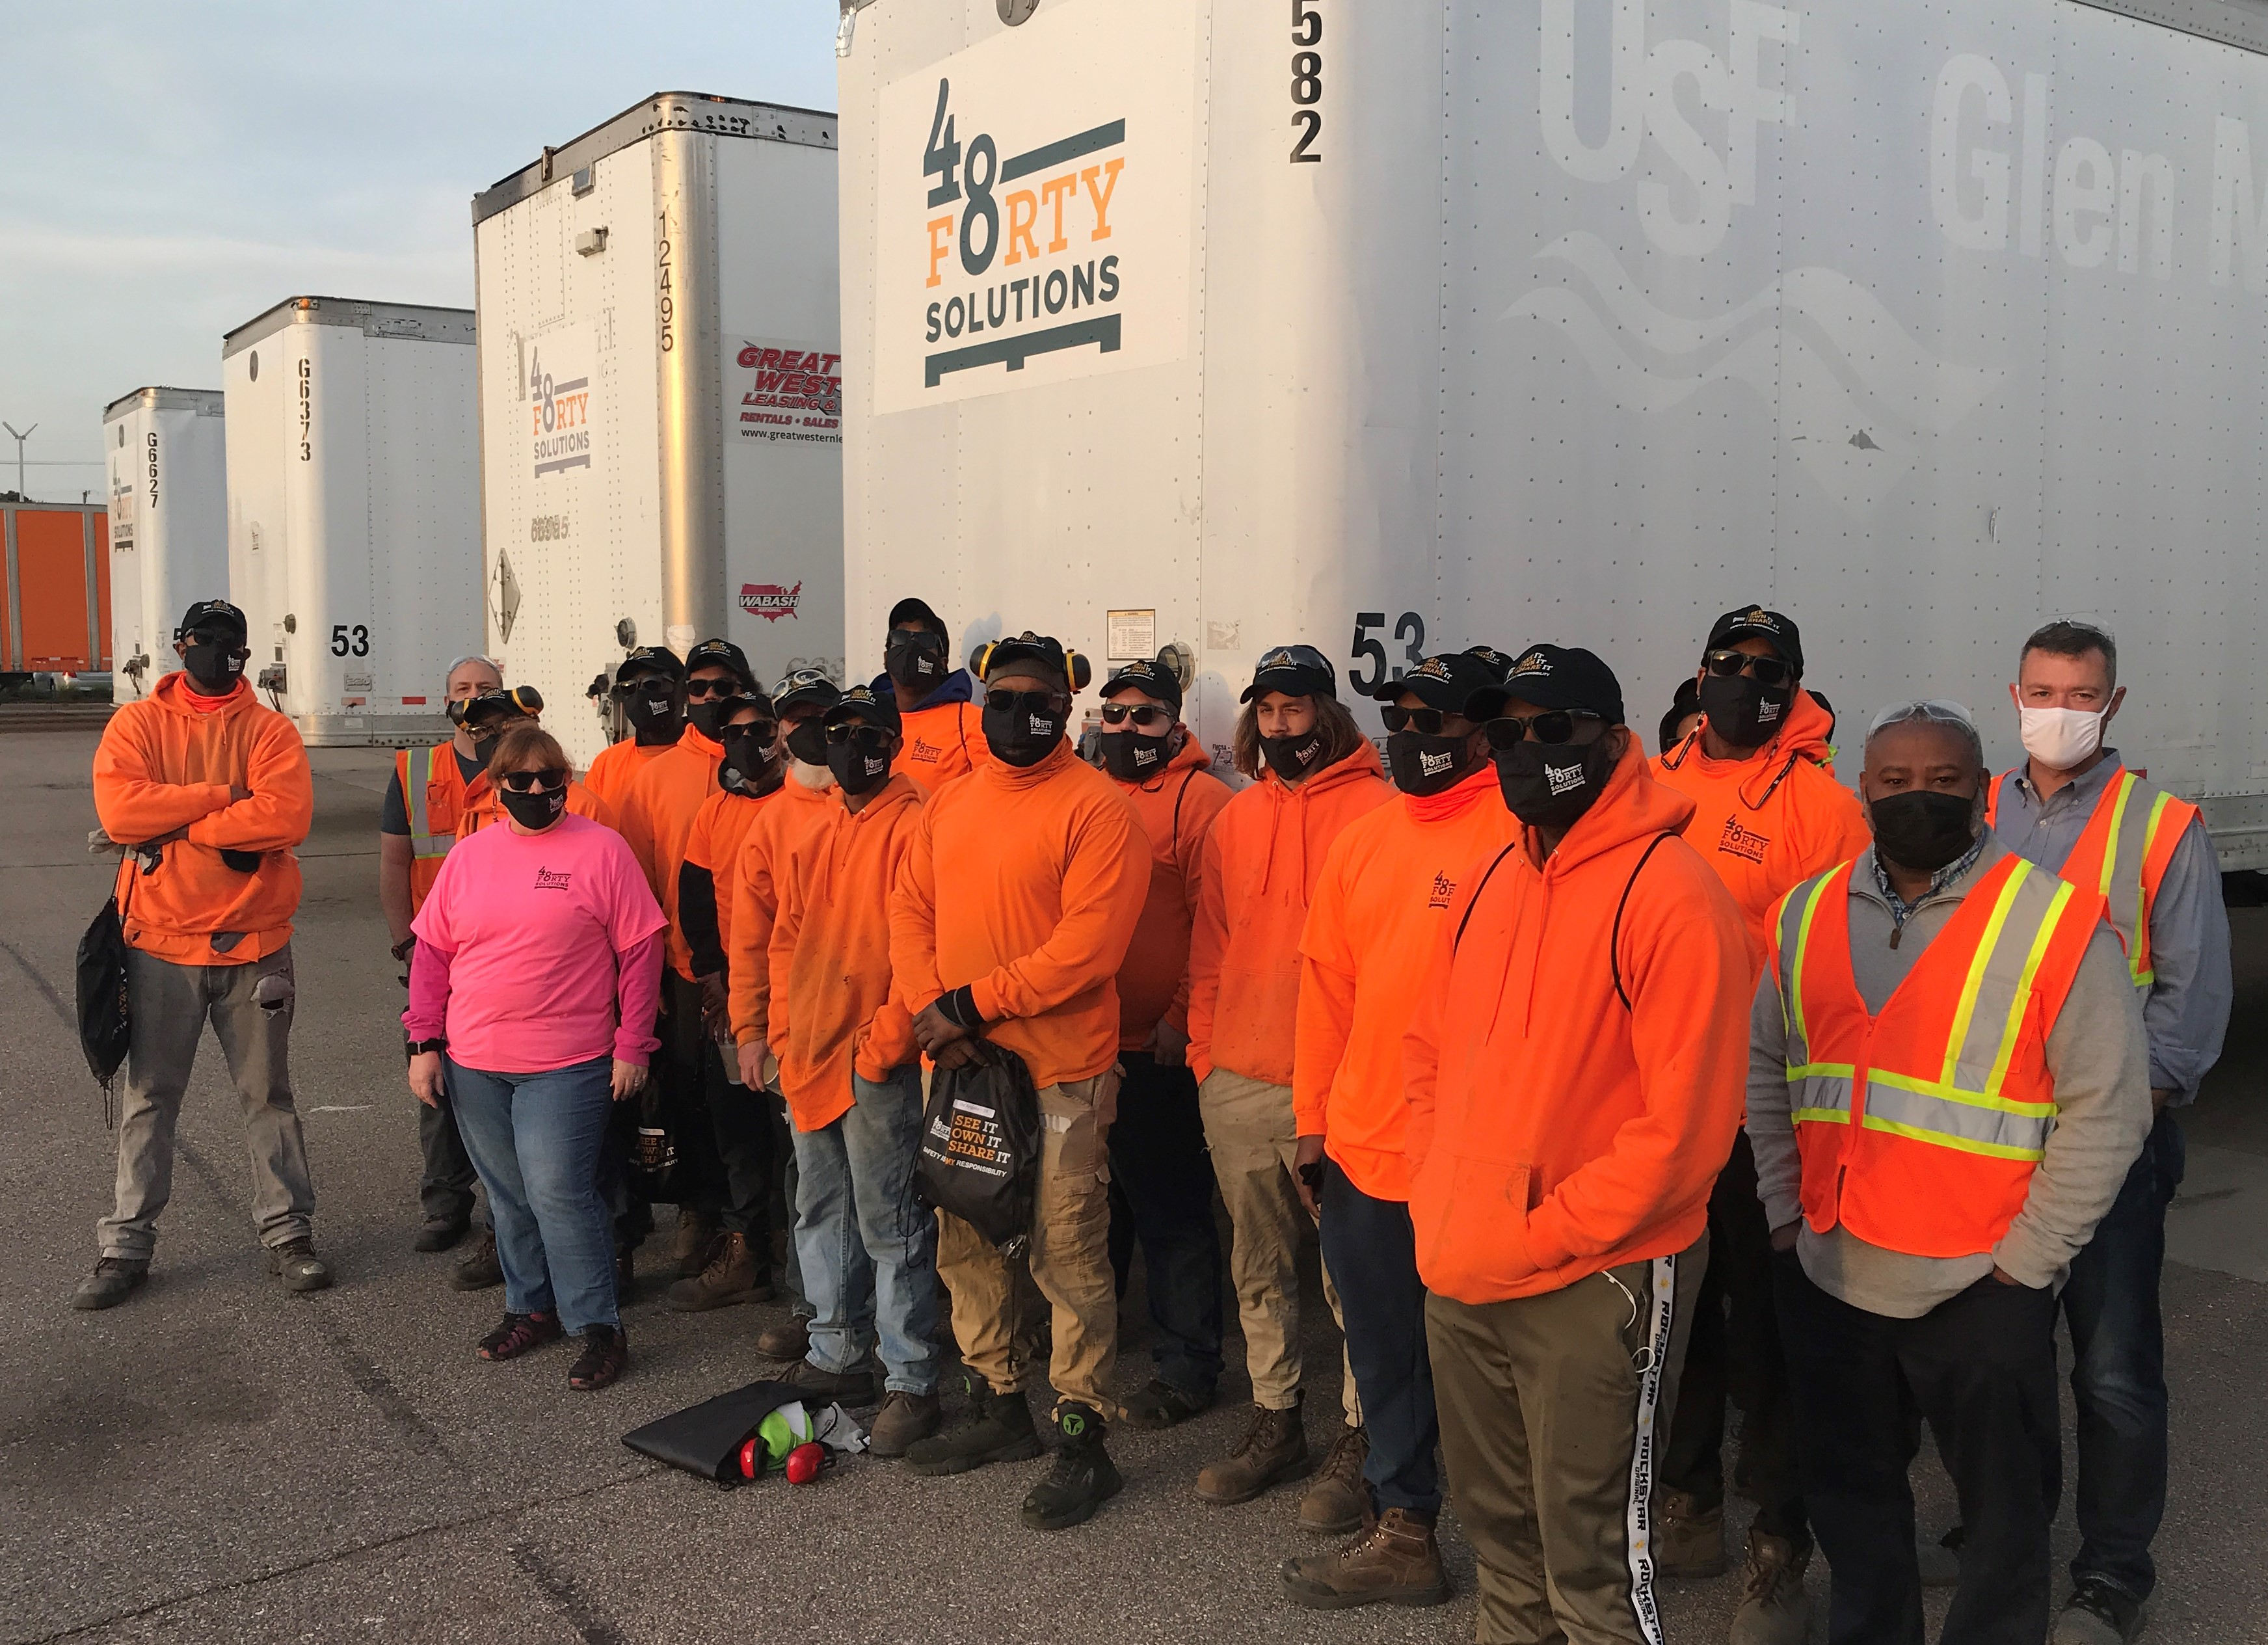 The Livonia, MI team gathered for a safety discussion and lunch.